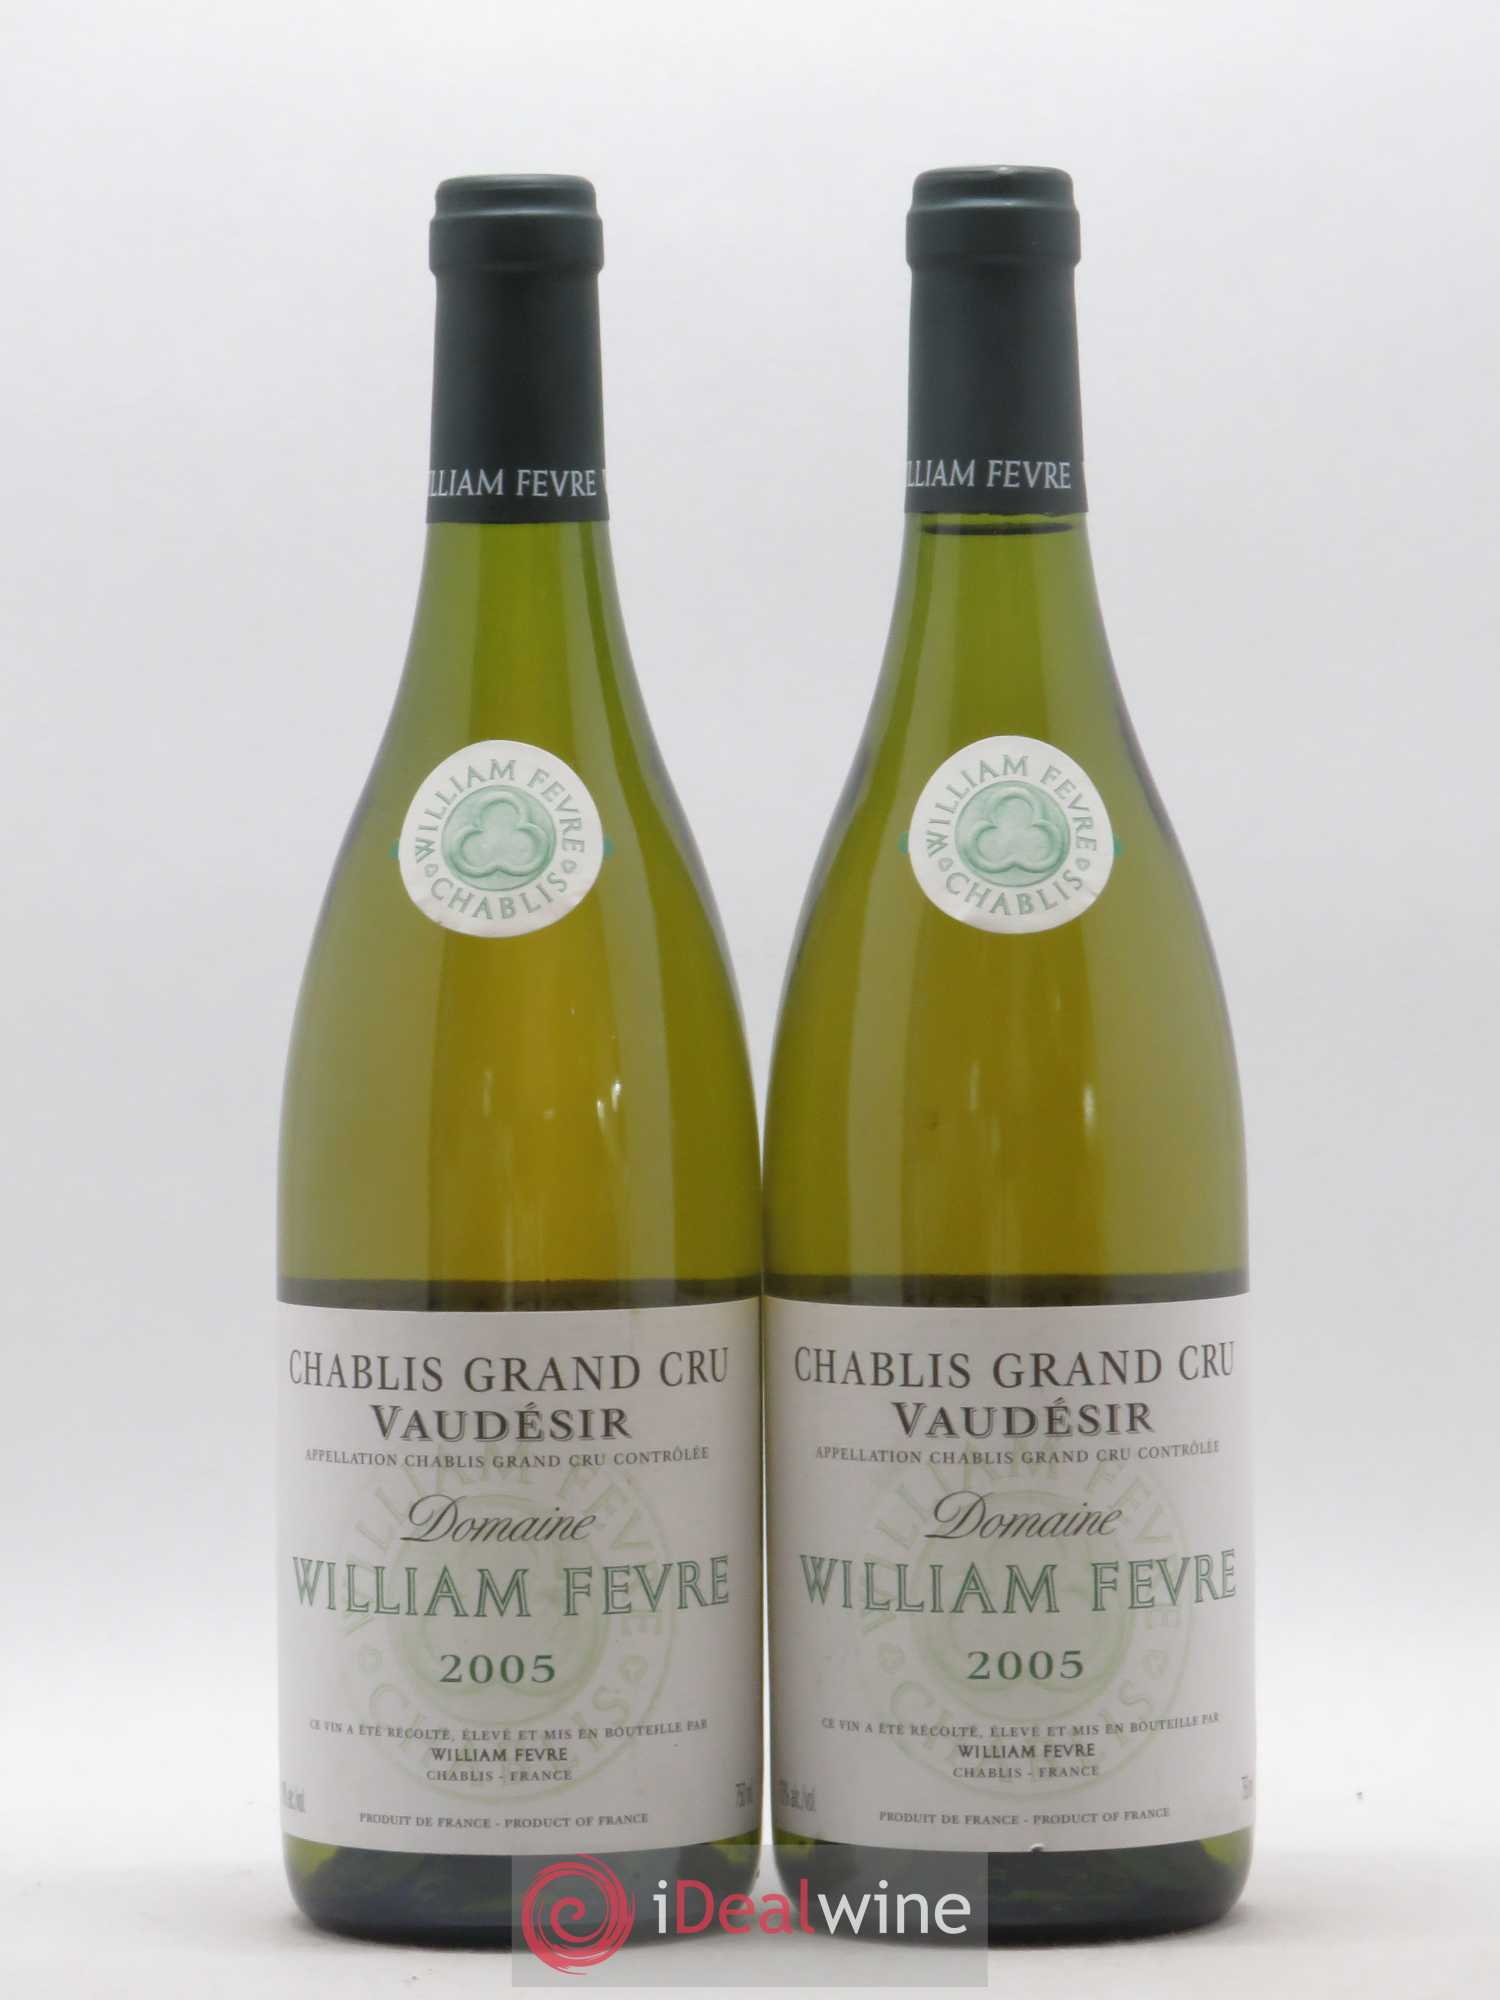 Chablis Grand Cru Vaudésir William Fèvre (Domaine)  2005 - Lot of 2 Bottles